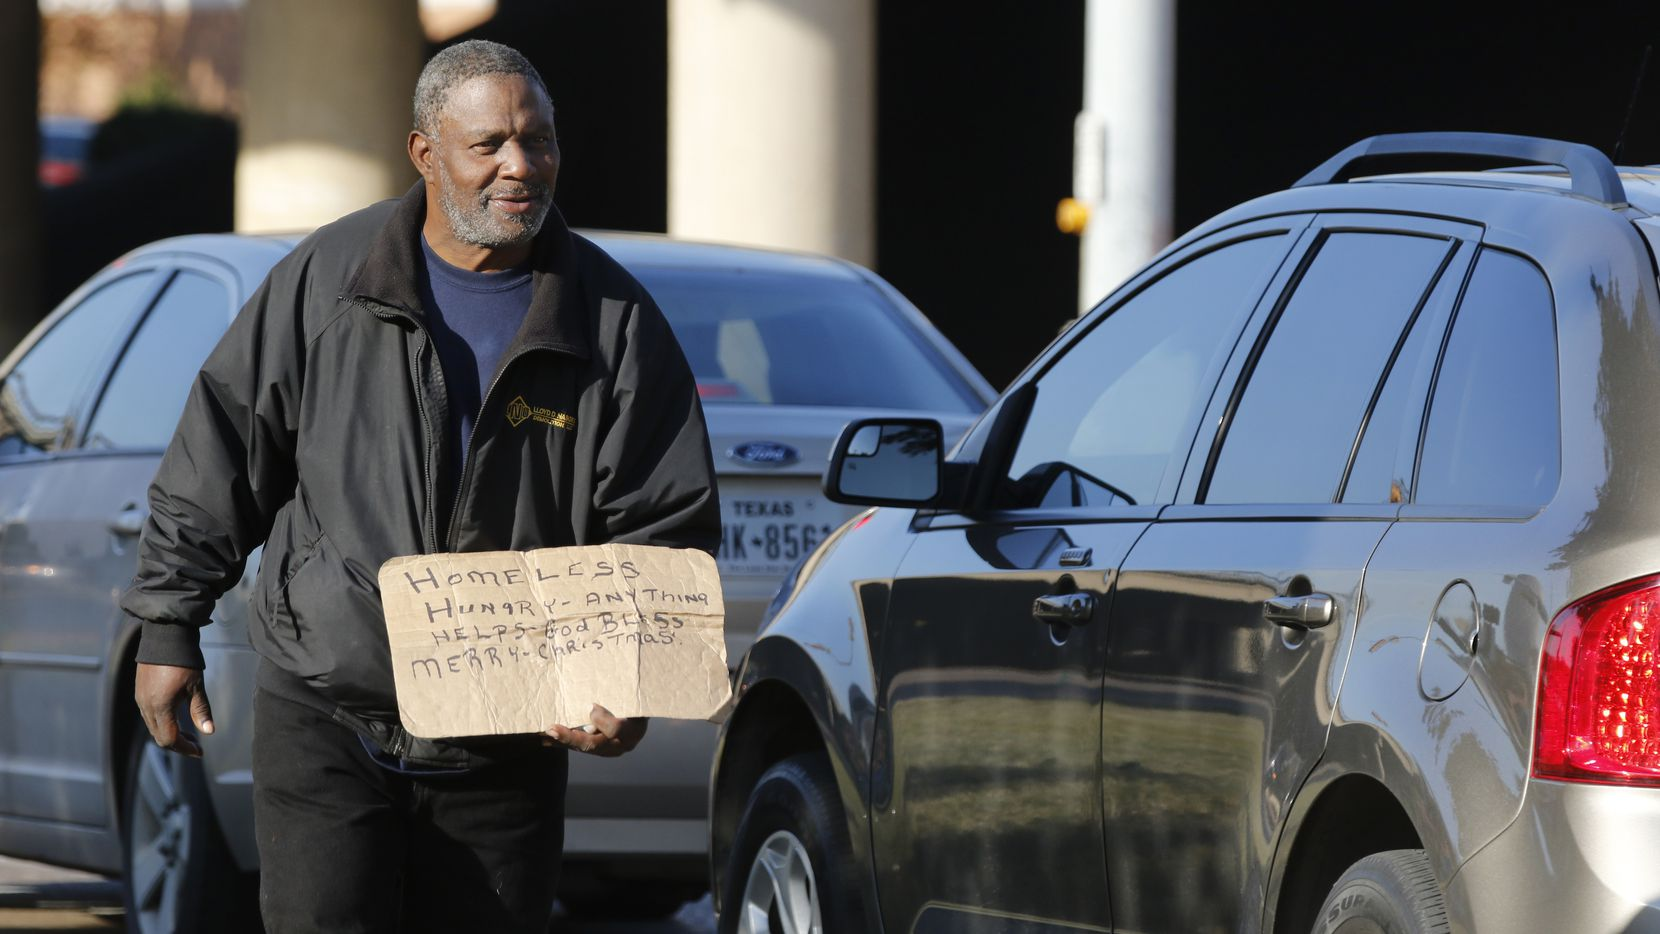 Louis Harris, 57, panhandles at the intersection I-35E and Market Center in Dallas on Dec. 12, 2016. He said he is homeless.